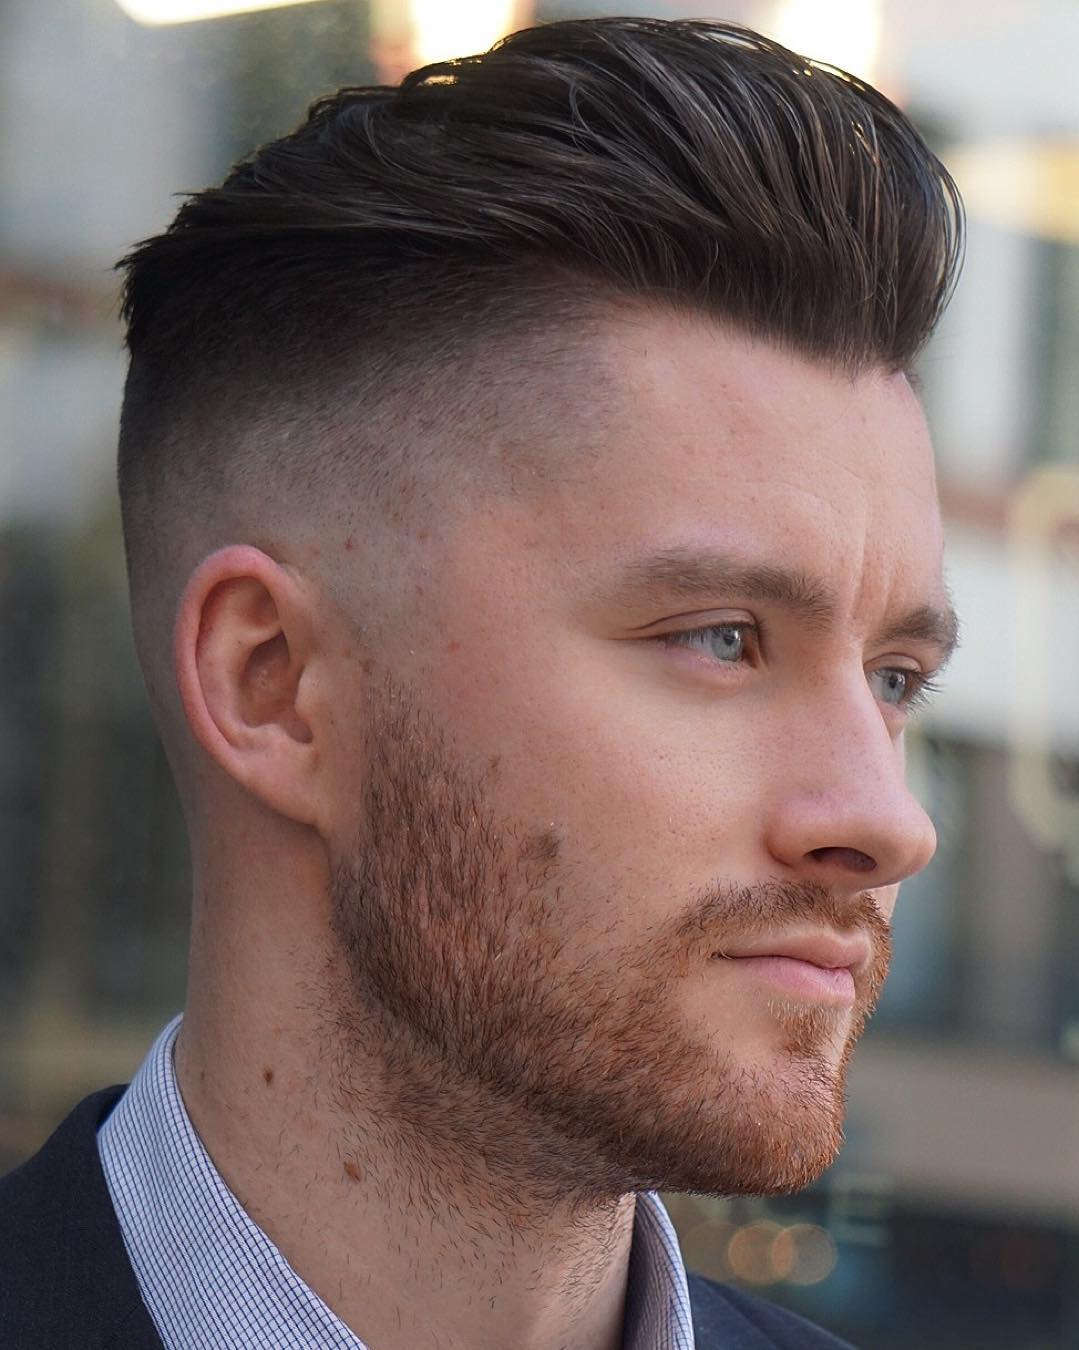 As a matter of fact, it is one of the biggest trends among men's short hairstyles 2021 … 50 Stylish Undercut Hairstyle Variations To Copy In 2021 A Complete Guide